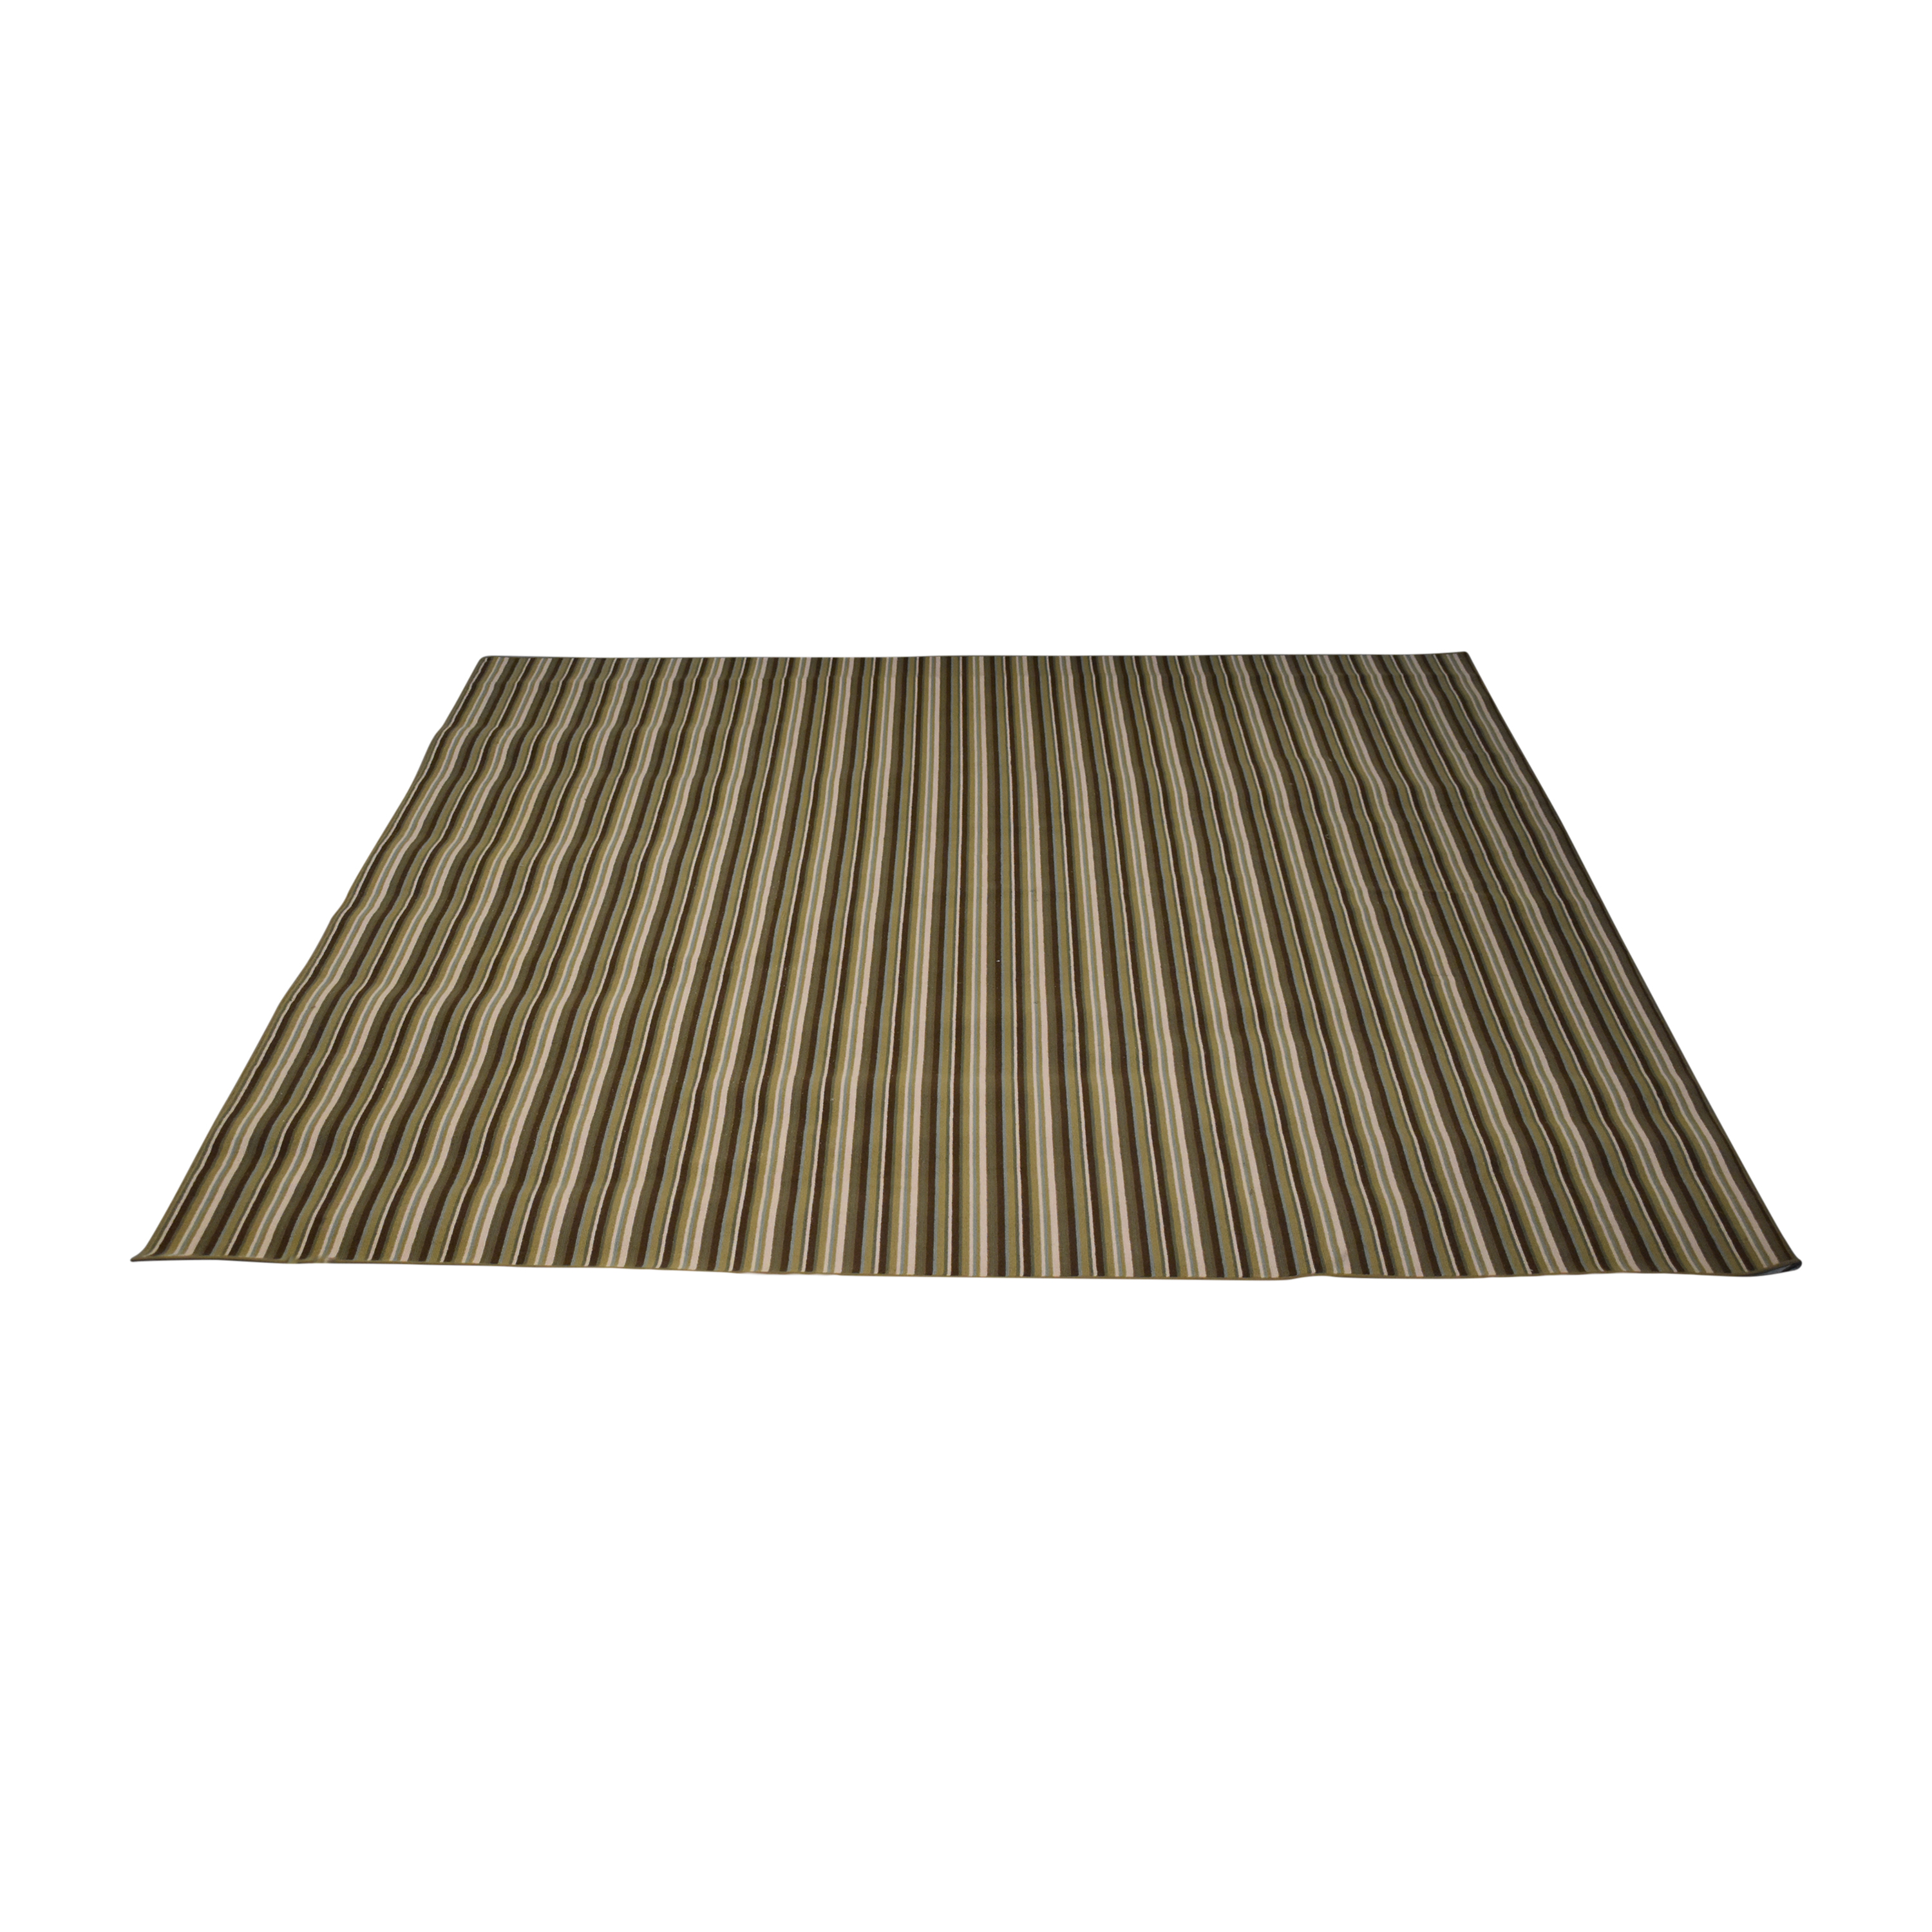 Striped Area Rug for sale